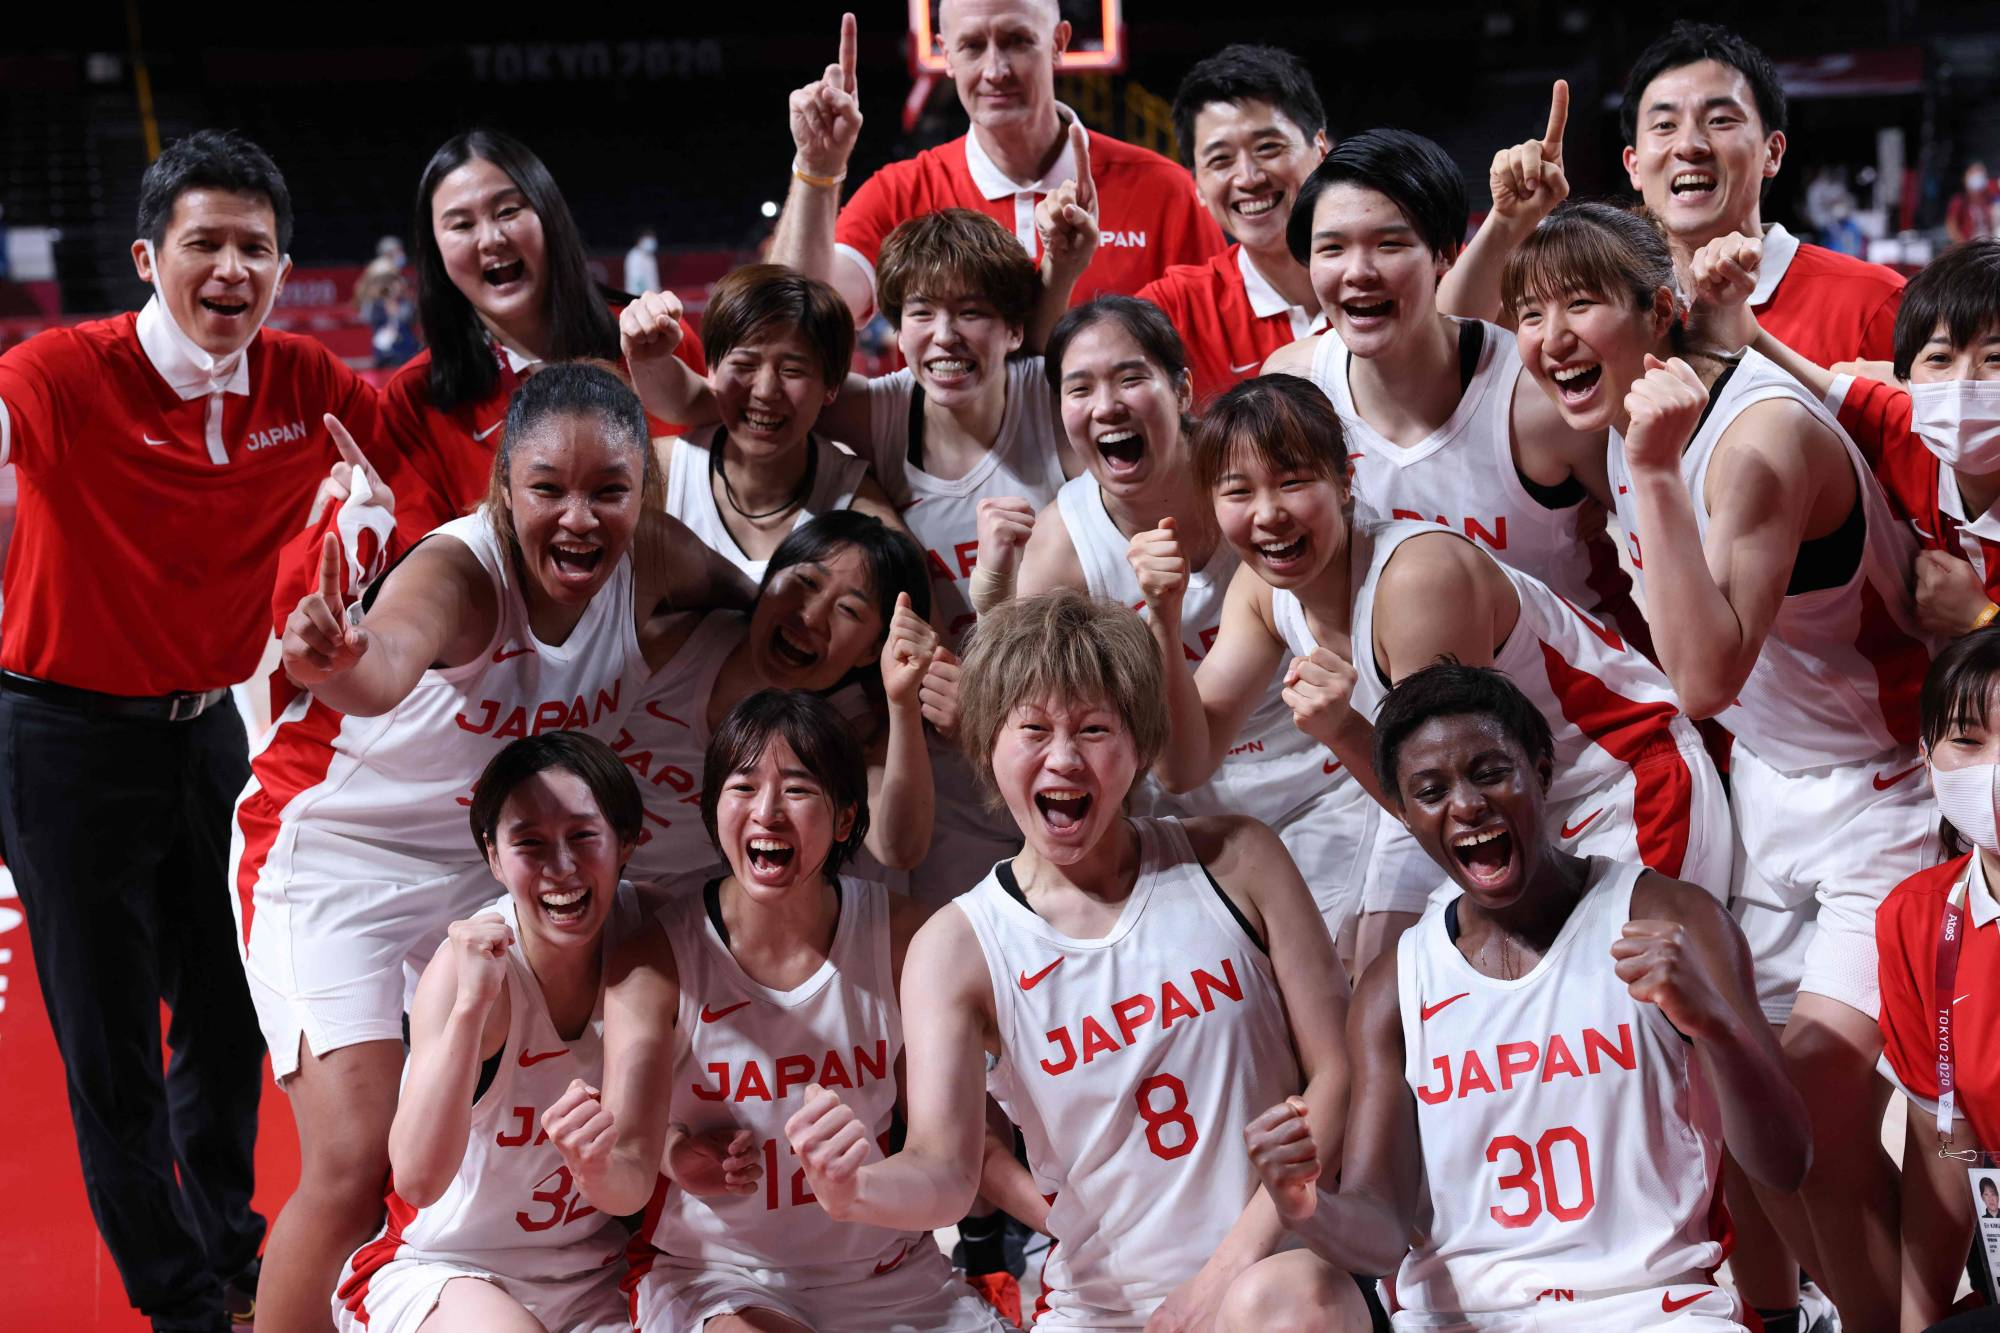 Members of the Japanese women's basketball team pose for a group photo after their win in their semifinal basketball match with France at Saitama Super Arena in Saitama on Friday. | AFP-JIJI